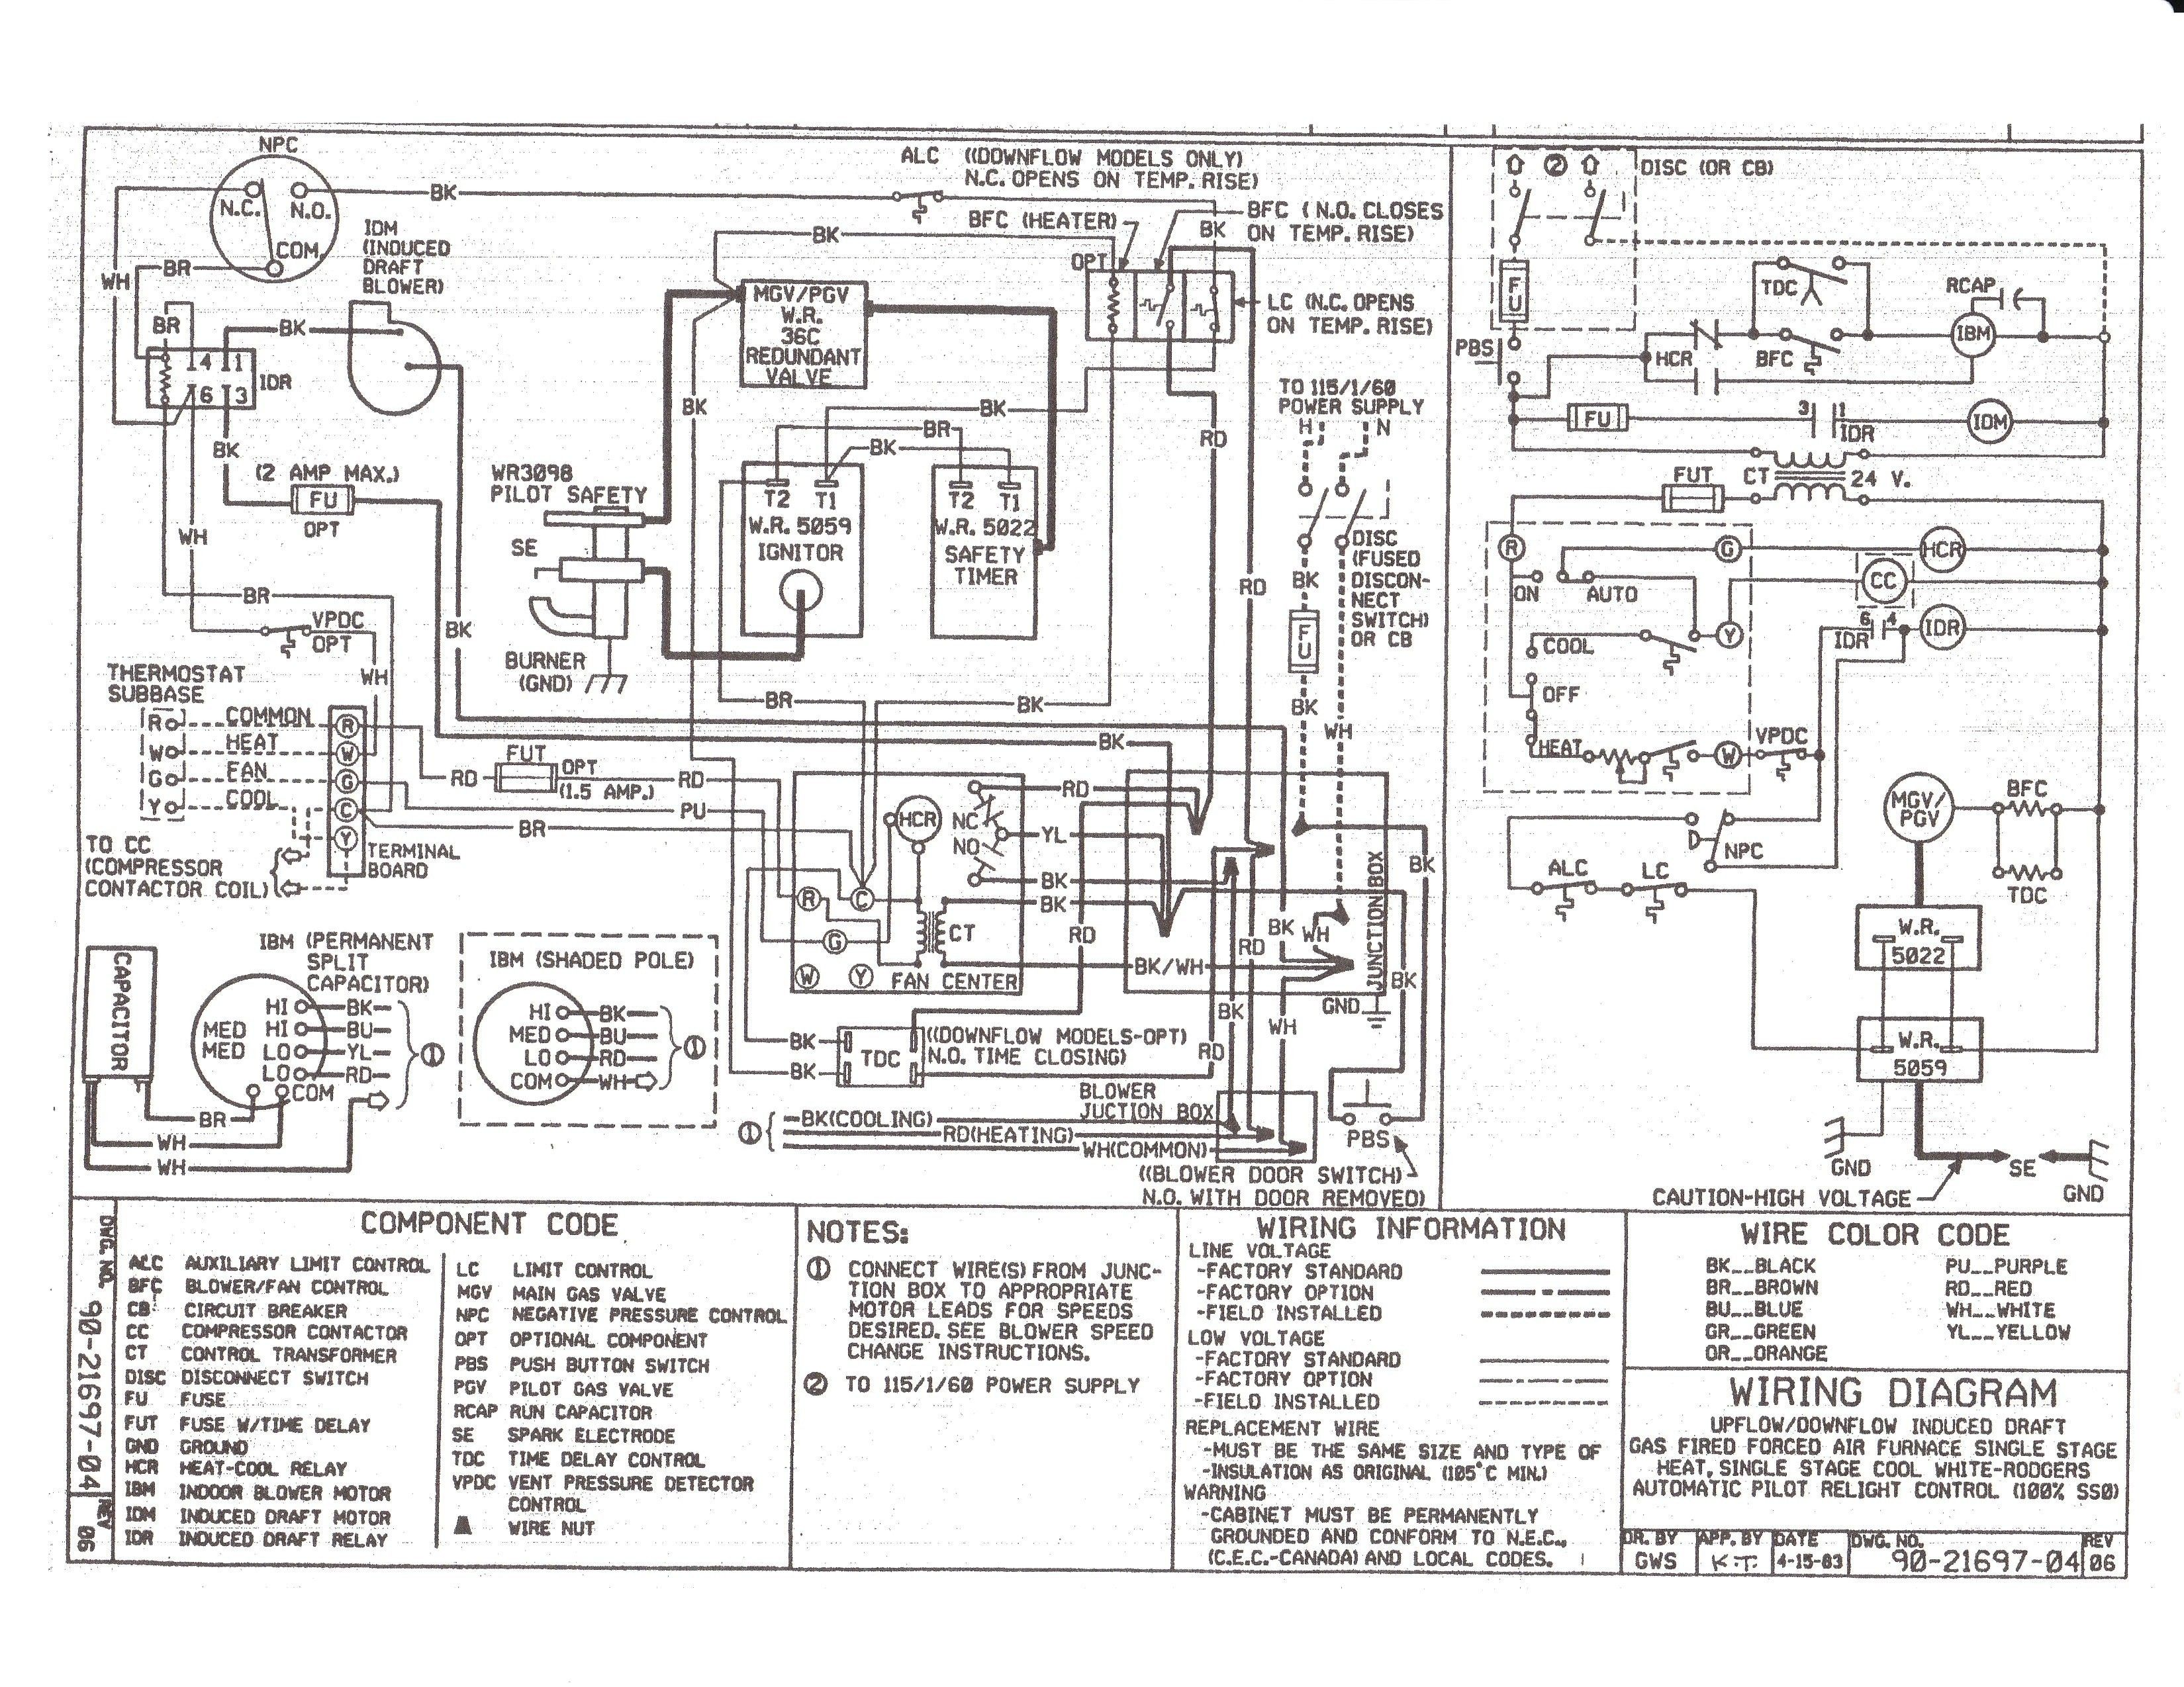 New Wiring Diagram For An Electric Furnace Electrical Wiring Diagram Electric Furnace Thermostat Wiring